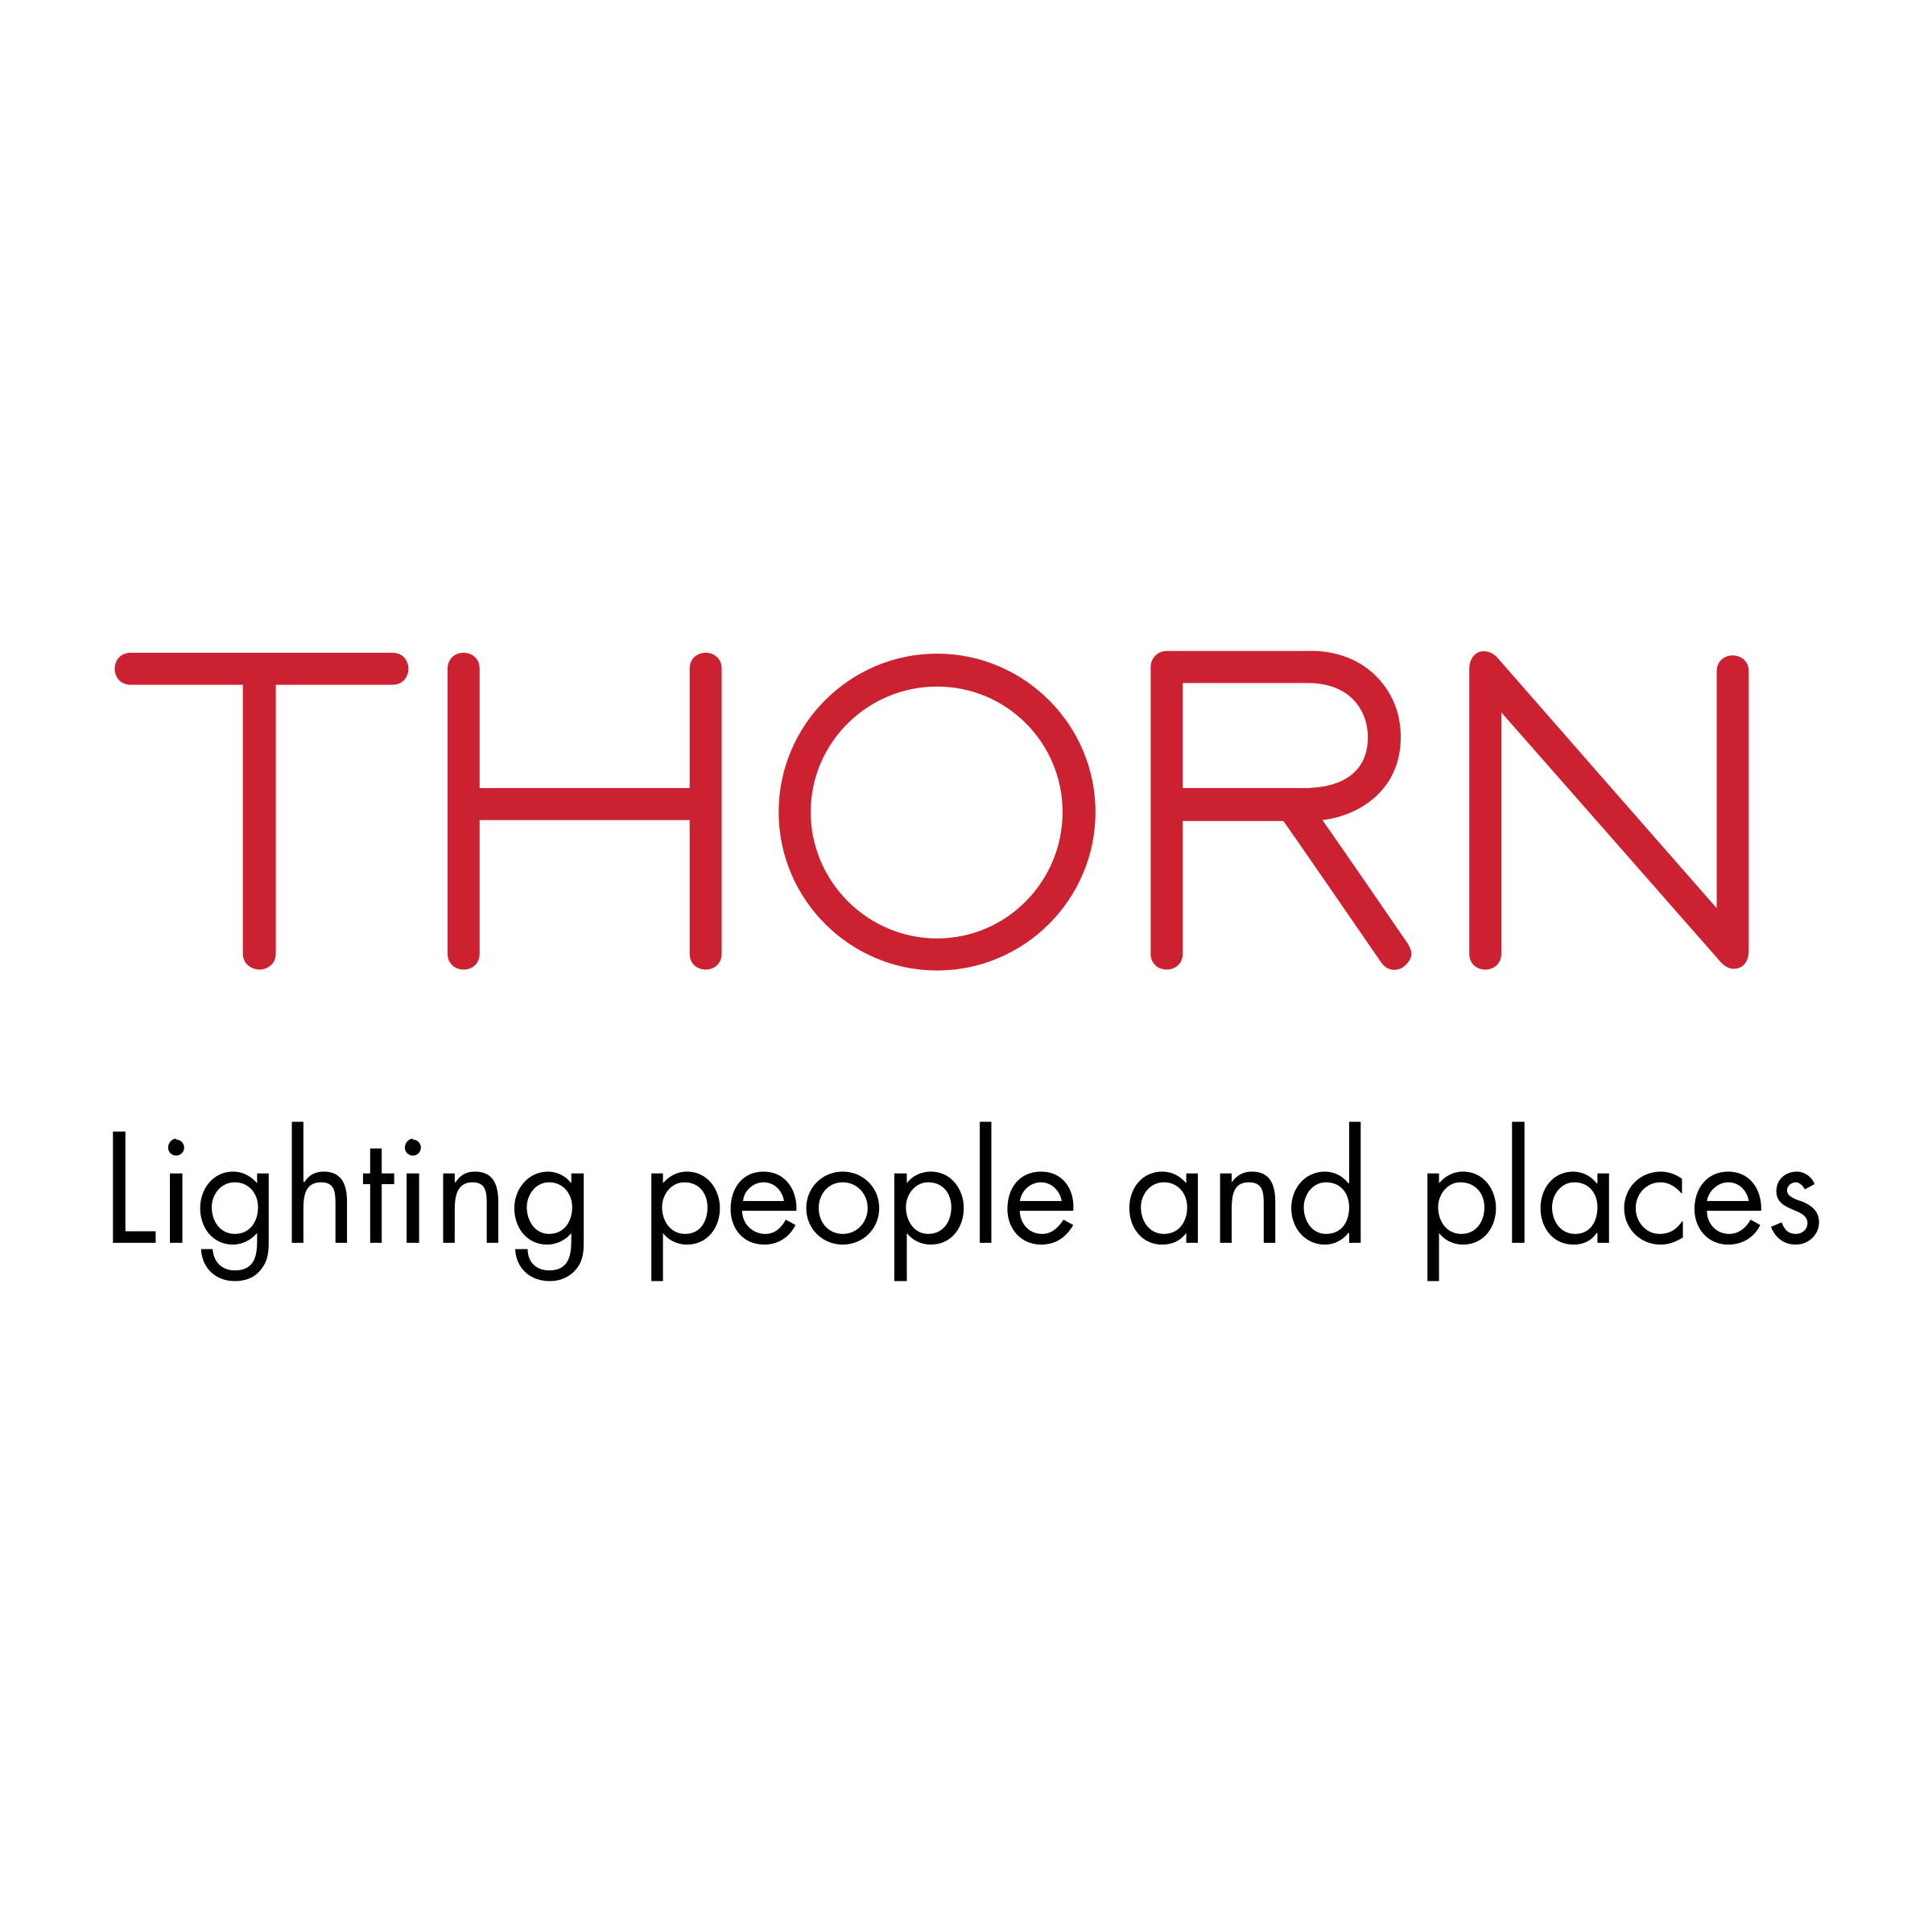 2400x2400 15 Thorns Vector Png For Free Download On Mbtskoudsalg